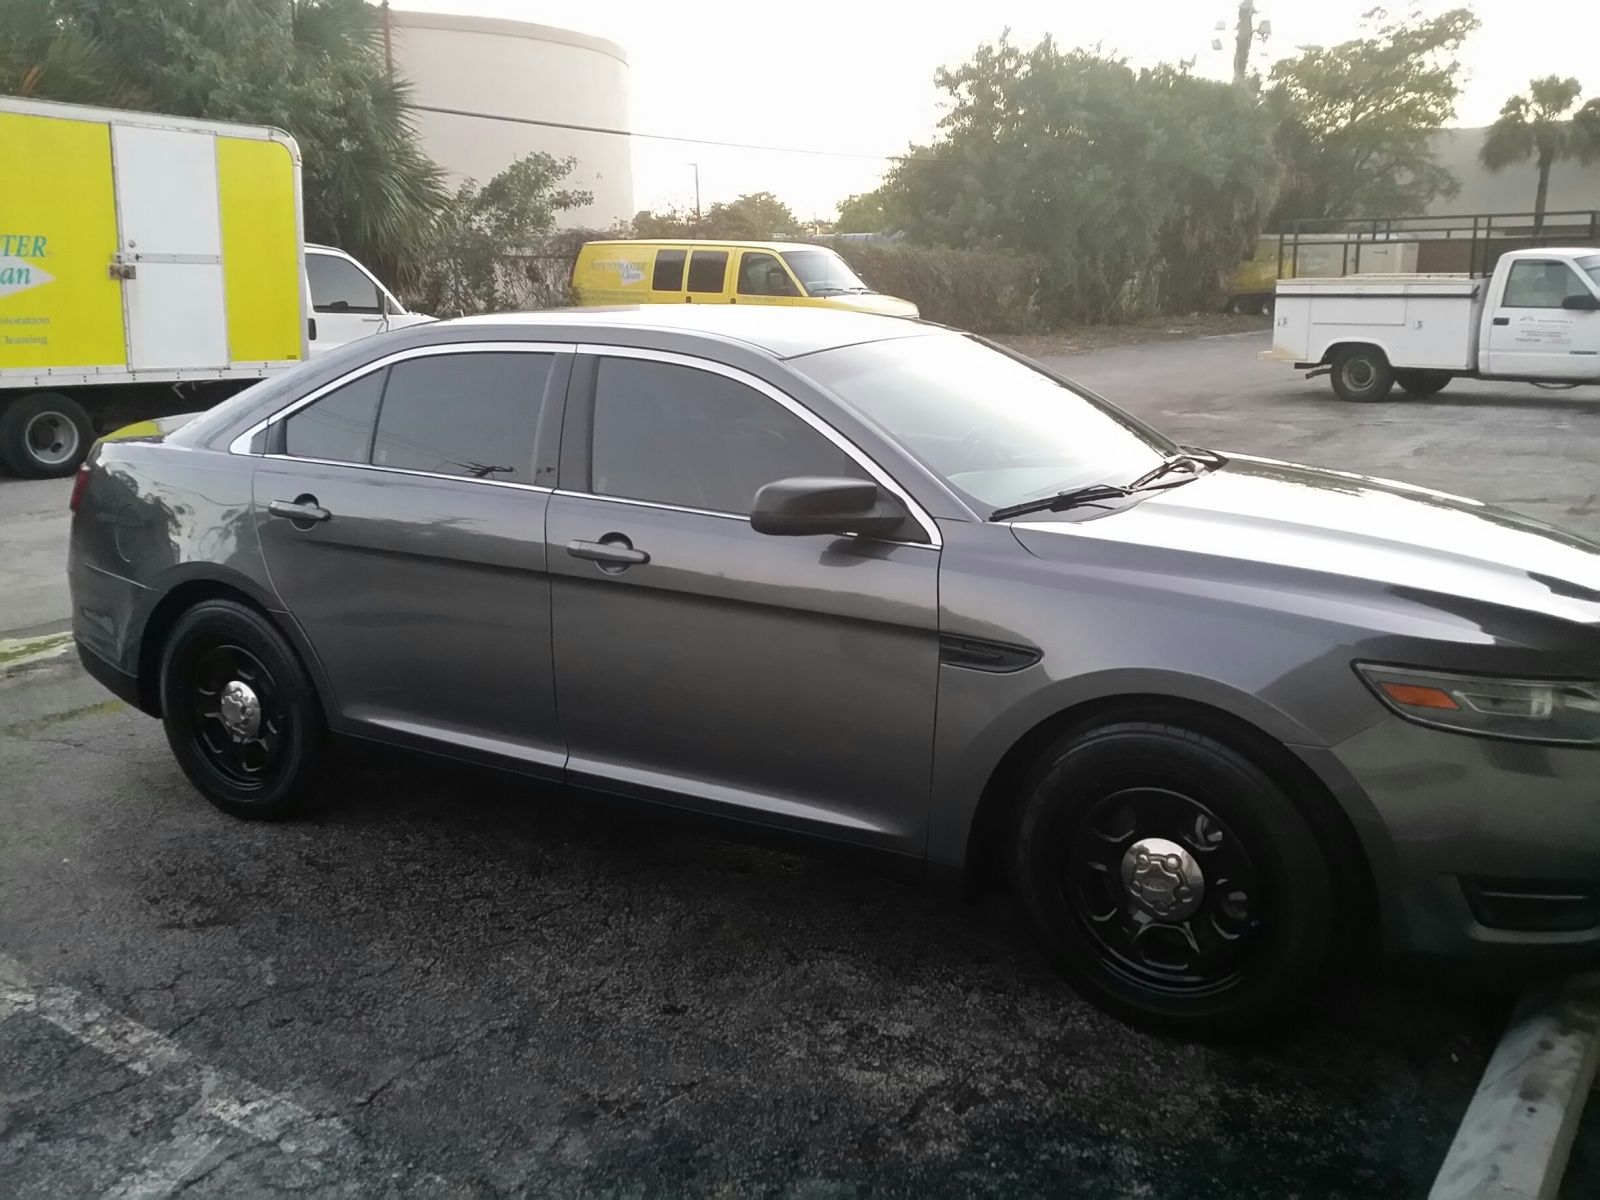 Undercover Ford Taurus Undercover Police Cars Police Cars